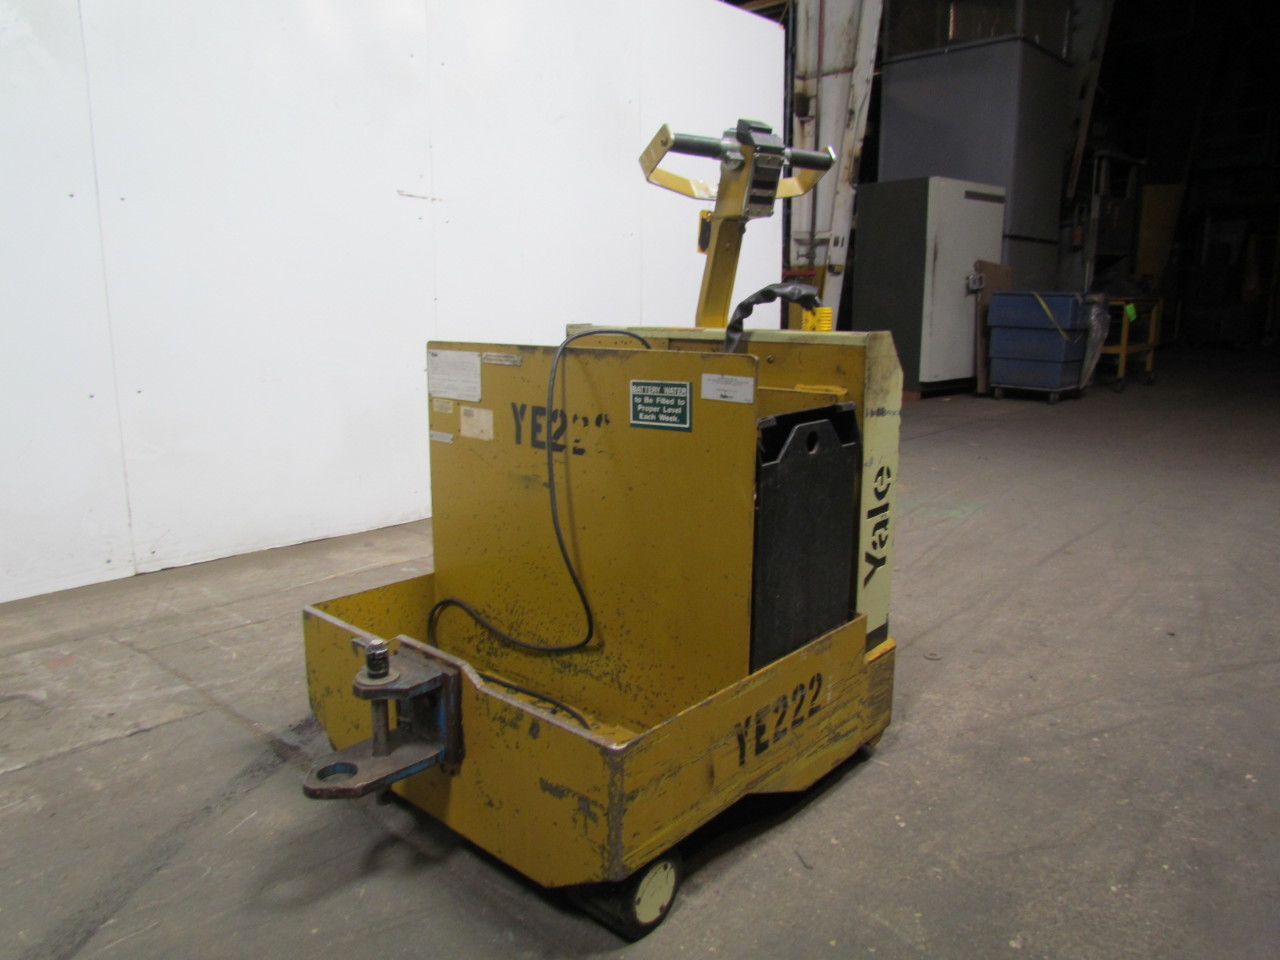 Mule Tow Tractor : Yale mtwr electric tow tractor mule walk ride v lb